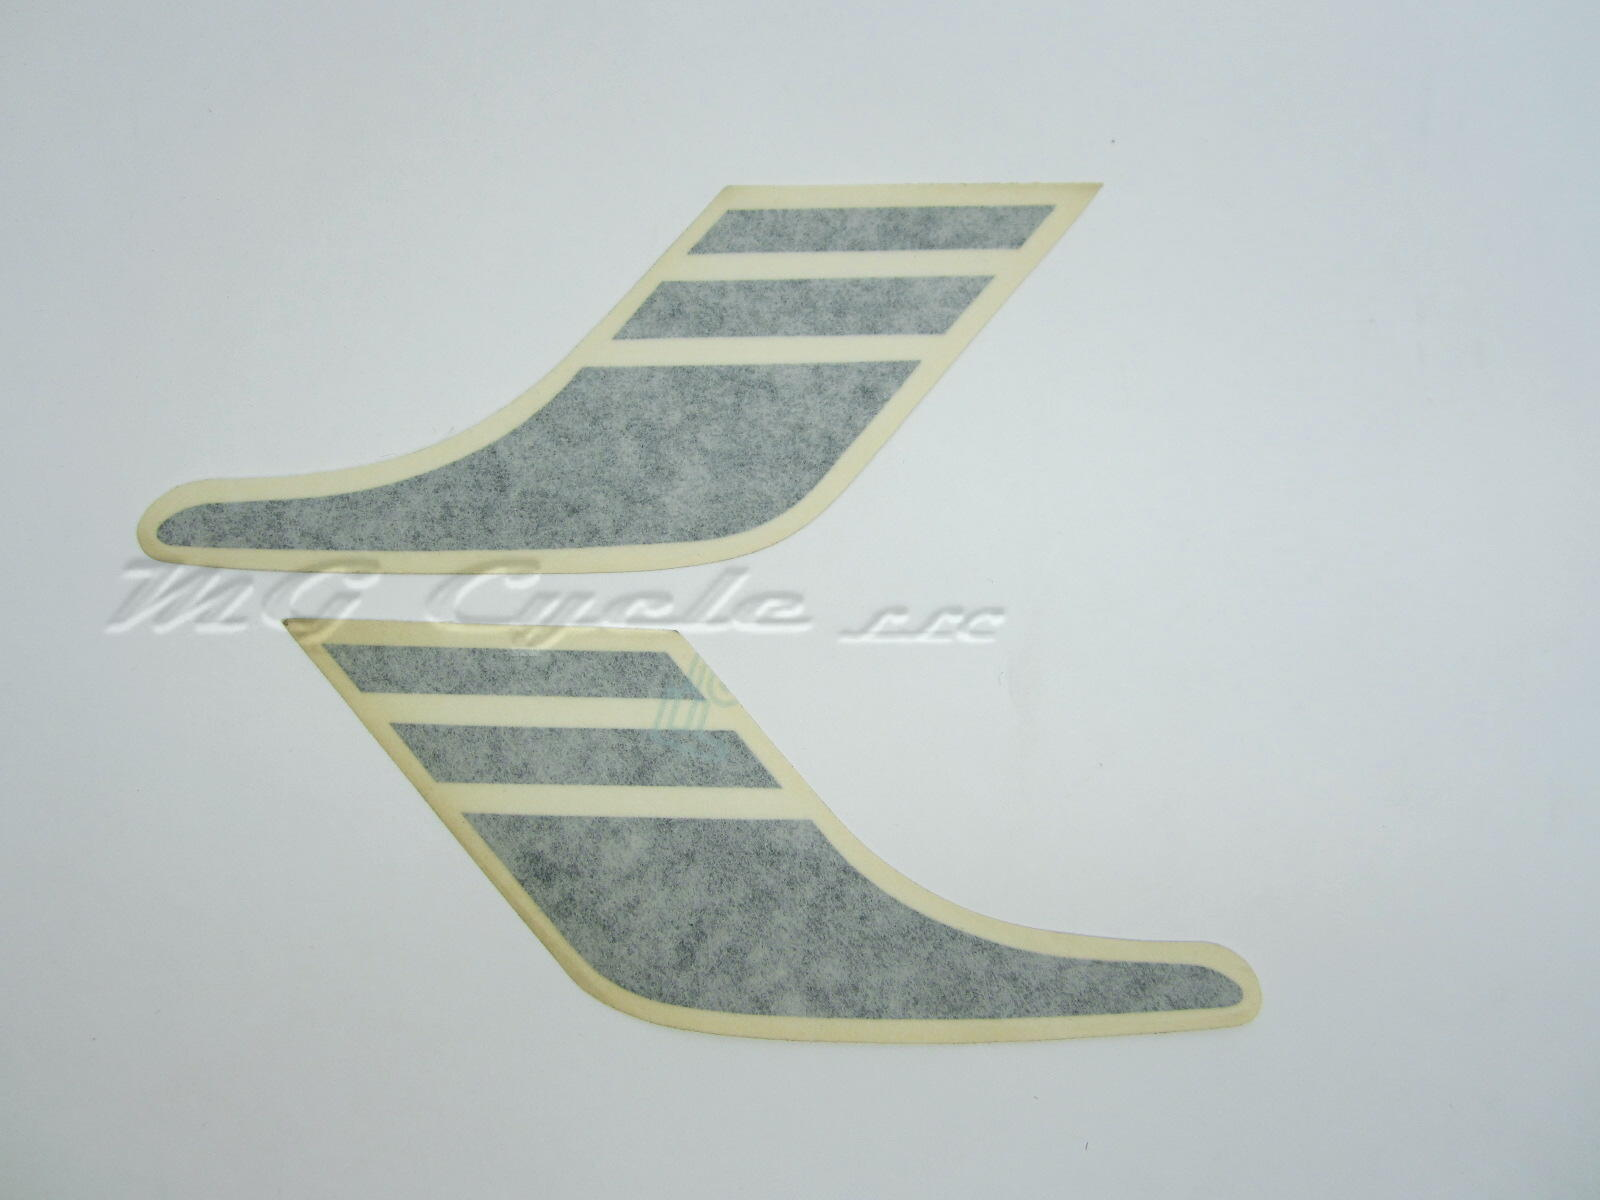 tail piece stripes decal V50 Monza